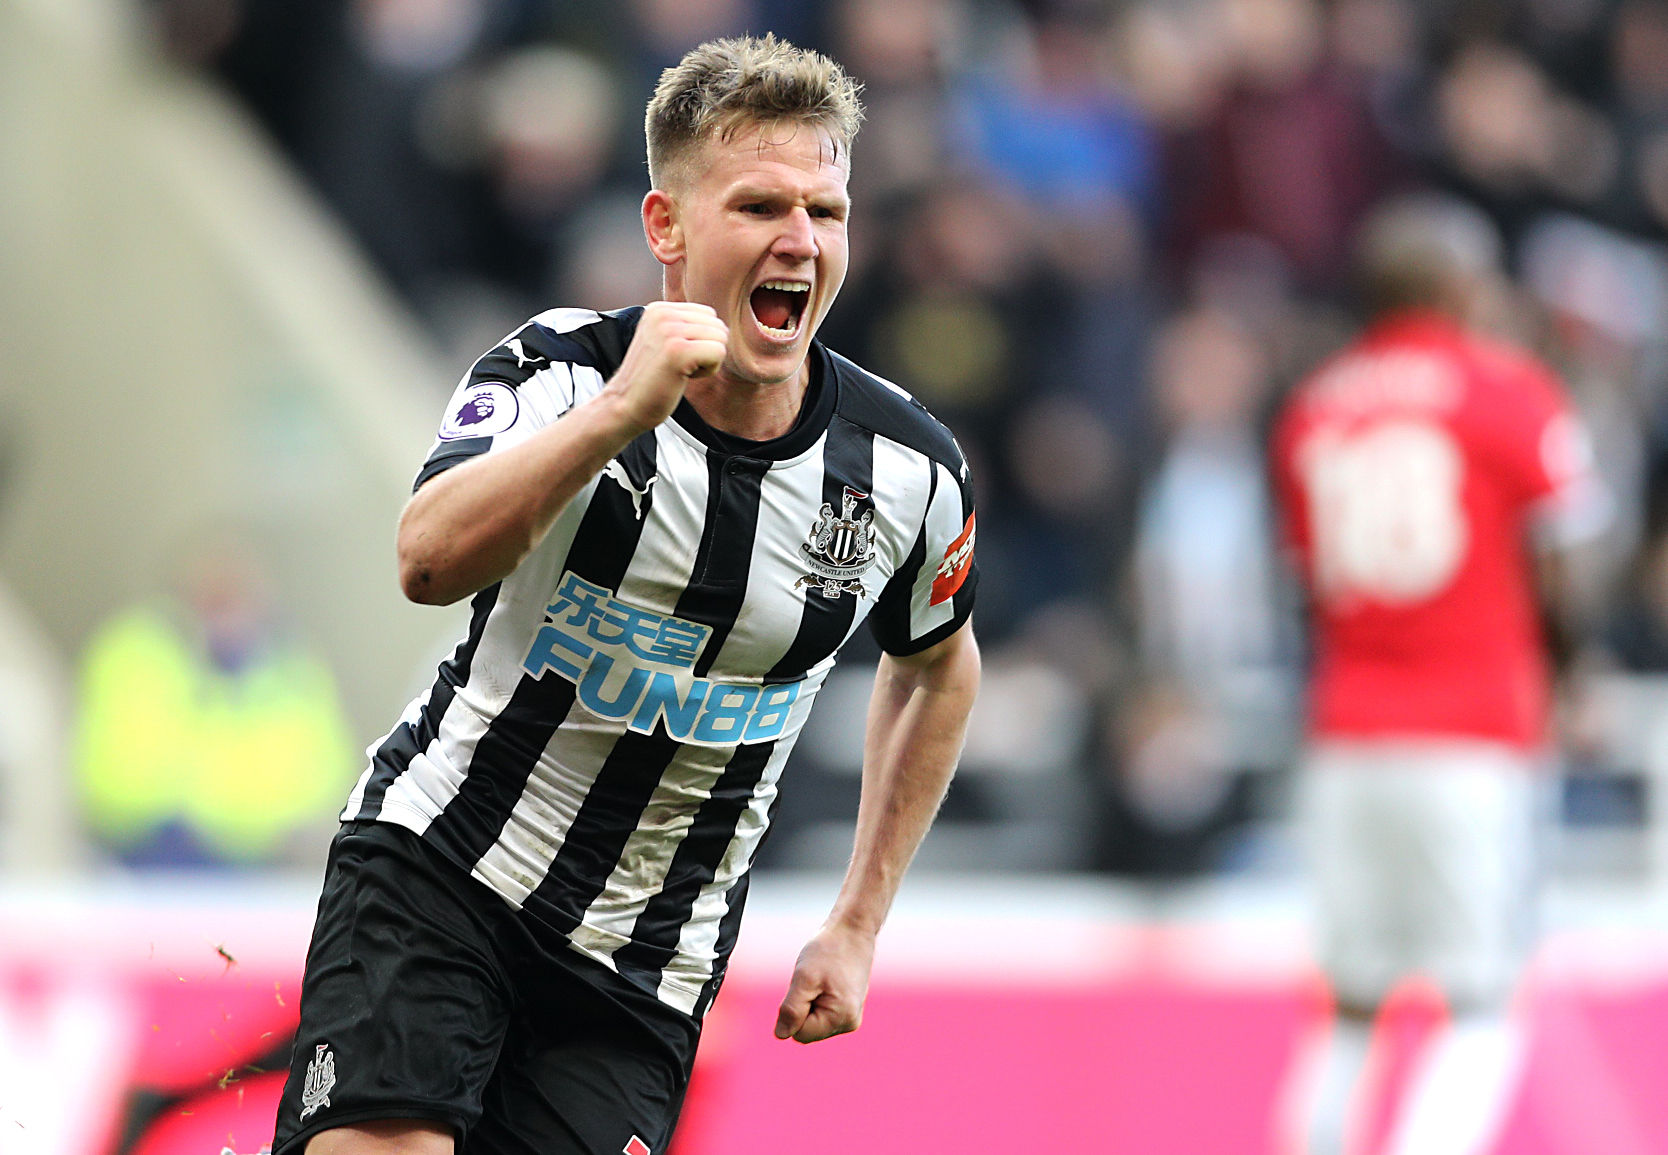 GOAL-DEN MOMENT: Matt Ritchie celebrates his match-winning goal in Newcastle United's 1-0 victory over Manchester United (Picture: Owen Humphreys/PA Wire)